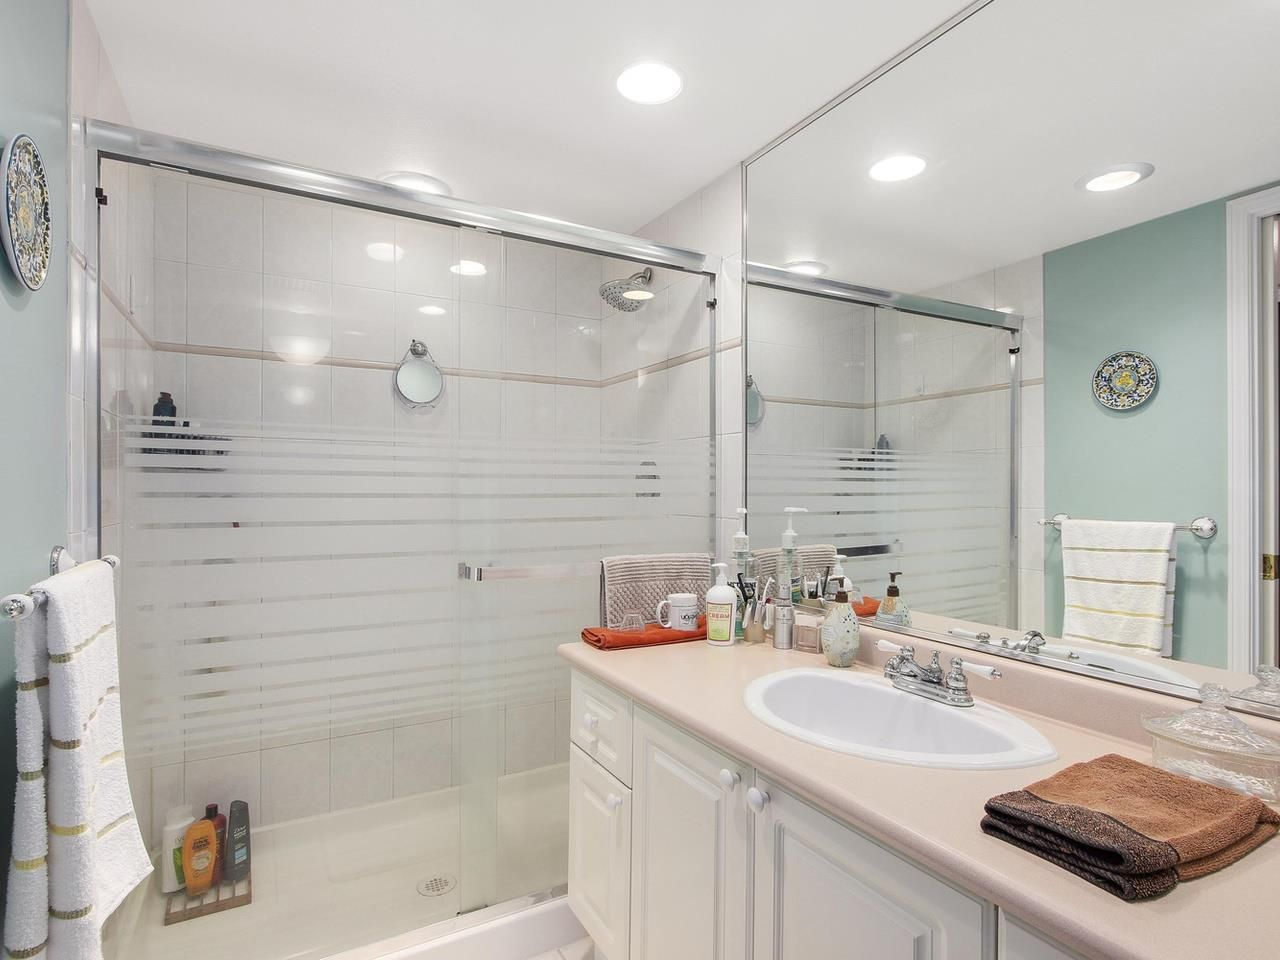 """Photo 8: Photos: 209 1575 BEST Street: White Rock Condo for sale in """"THE EMBASSY"""" (South Surrey White Rock)  : MLS®# R2151526"""